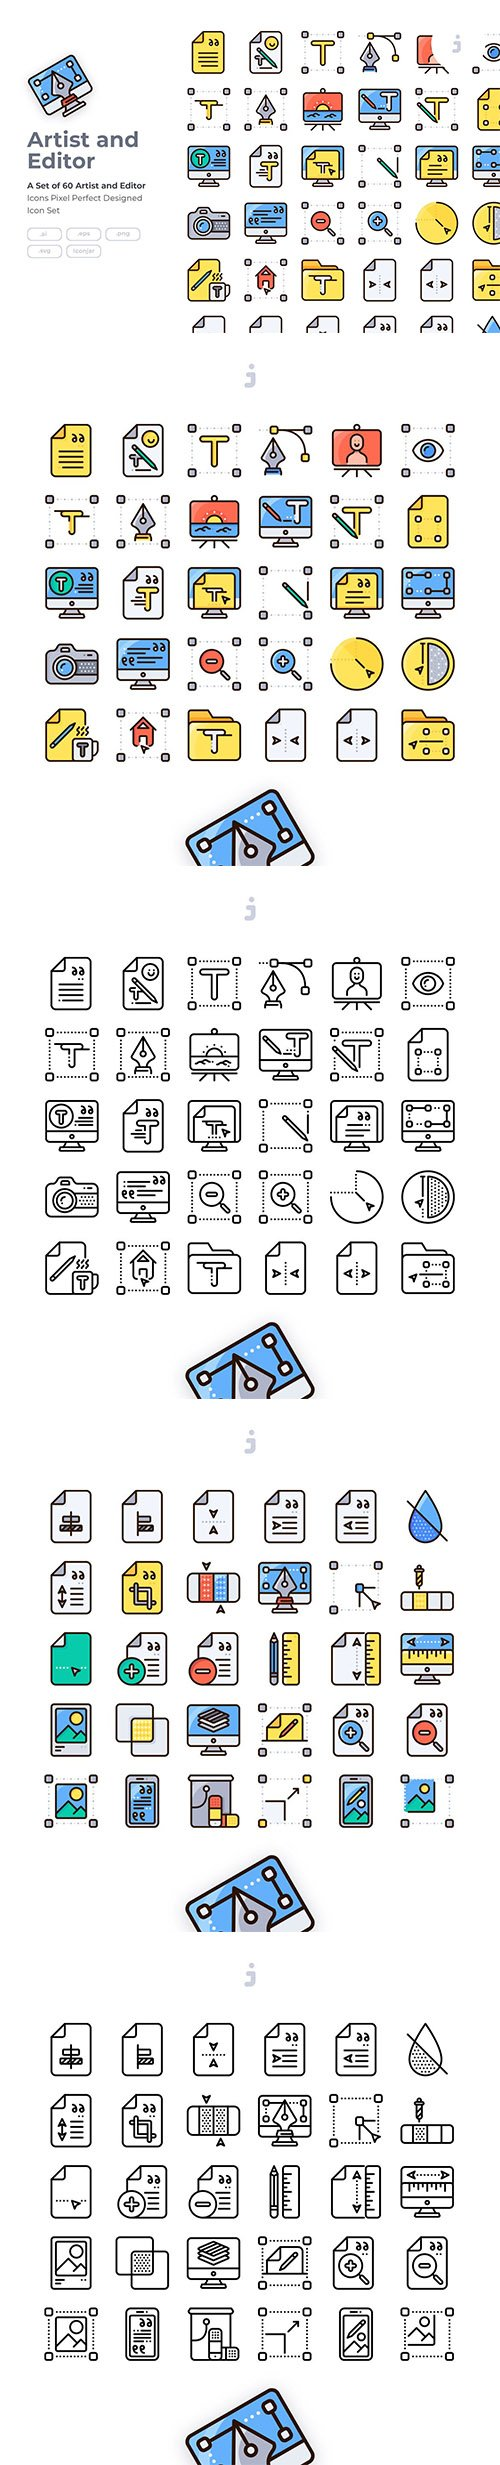 60 Art and Editor Icon set - Detailed Round line